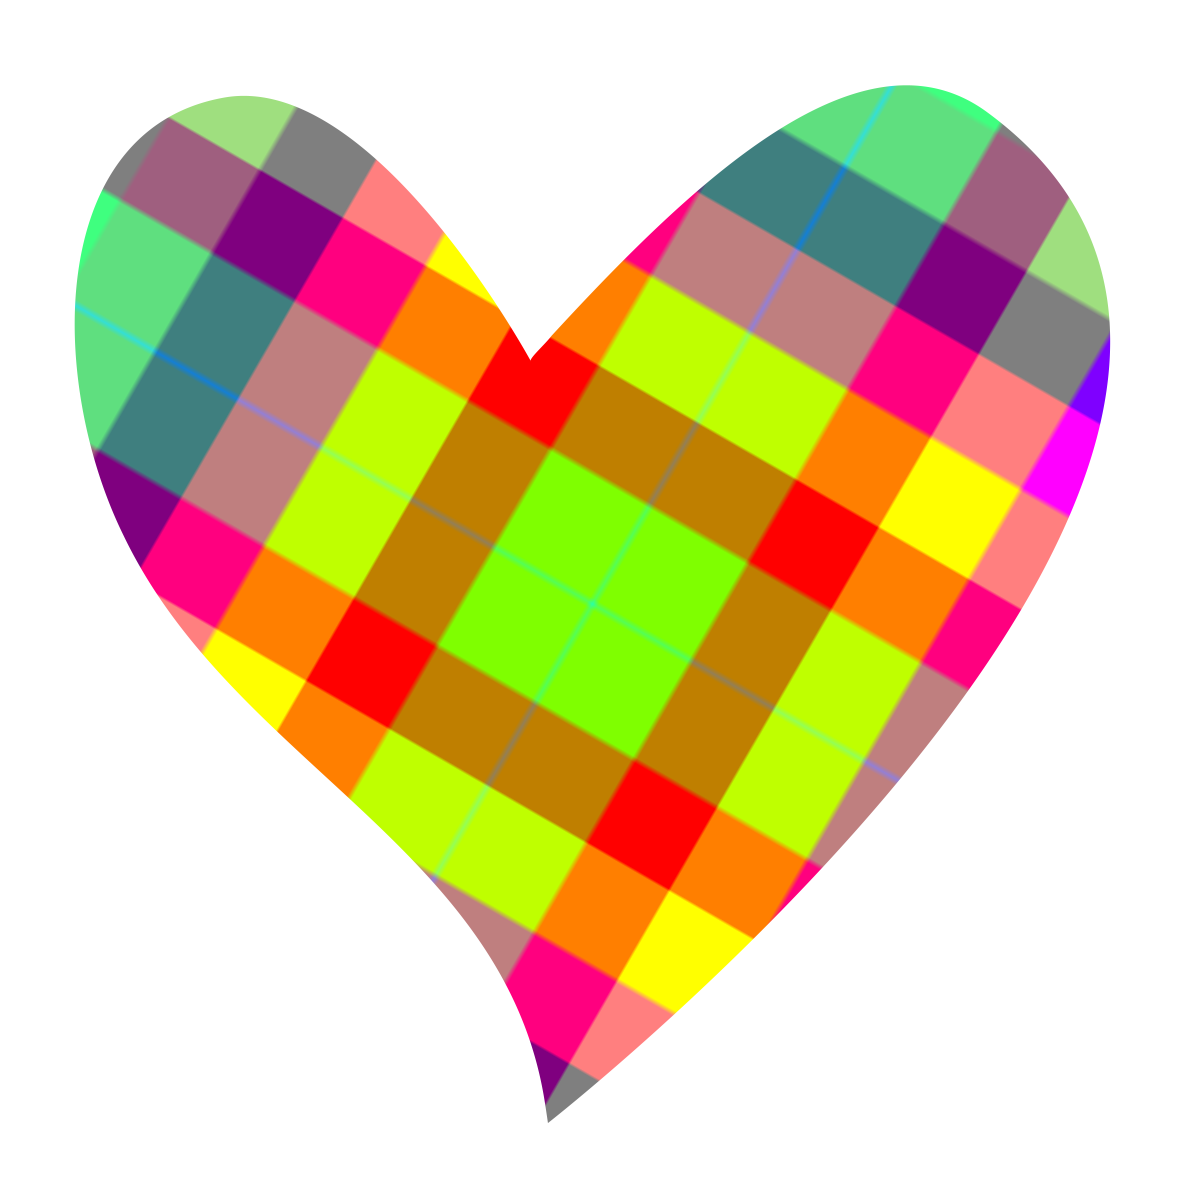 Hearts ‿ ⁀♡♥♡ | Heart clip art, Colorful heart, Free clip art